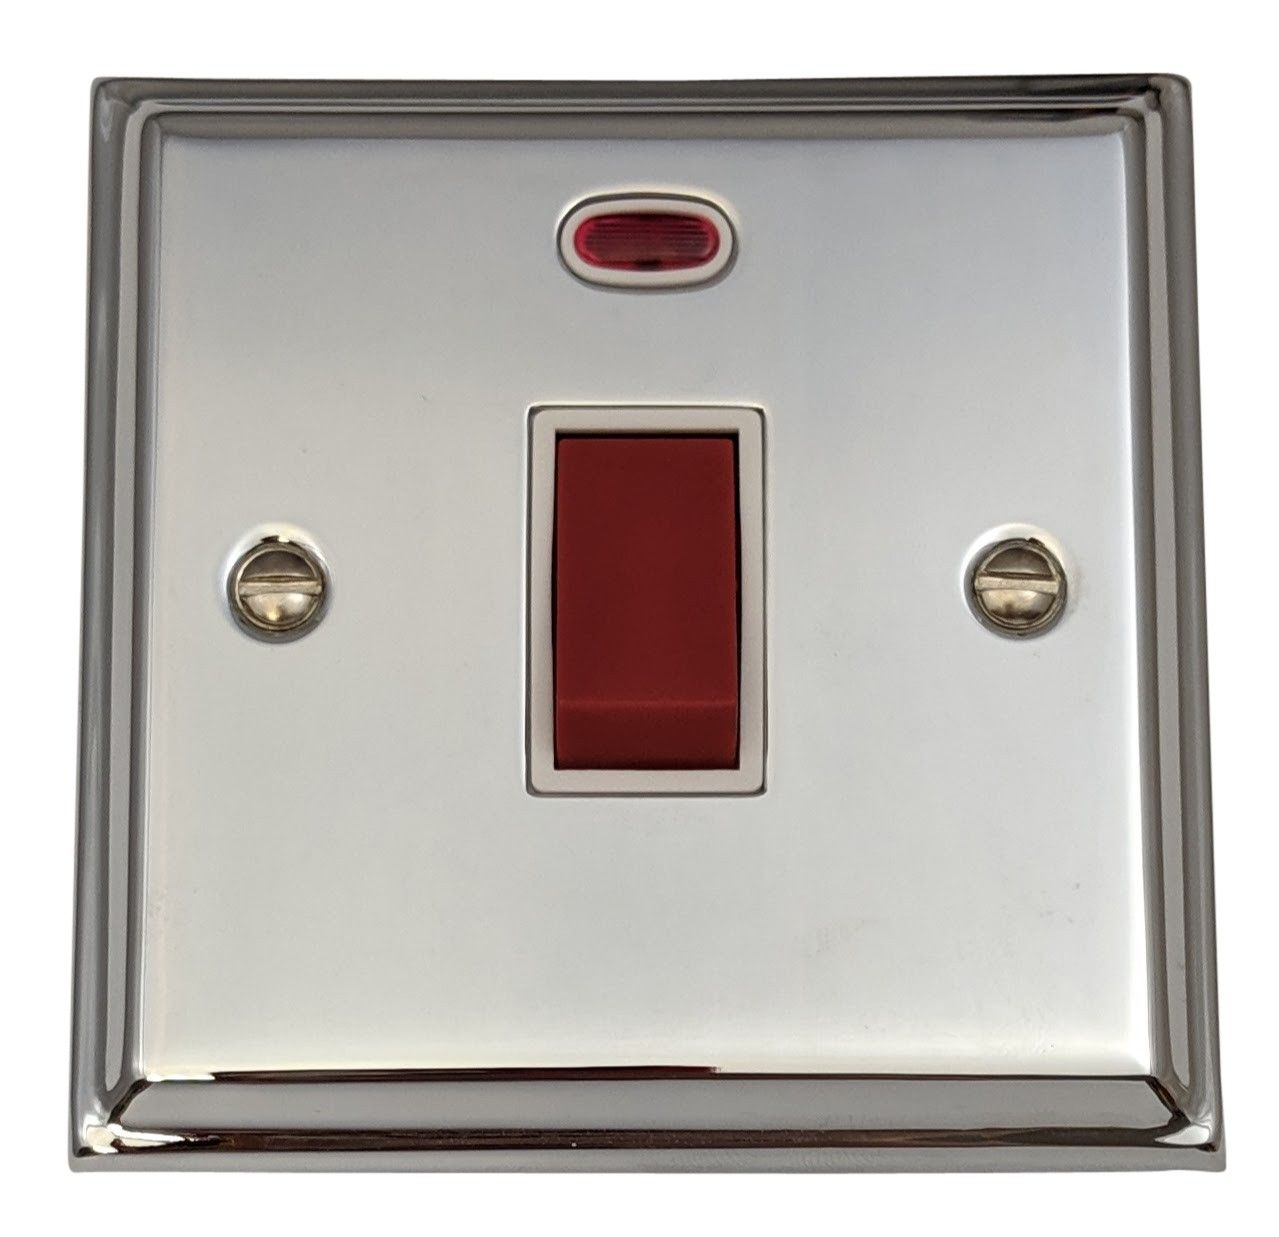 G&H DC46W Deco Plate Polished Chrome 45 Amp DP Cooker Switch & Neon Single Plate